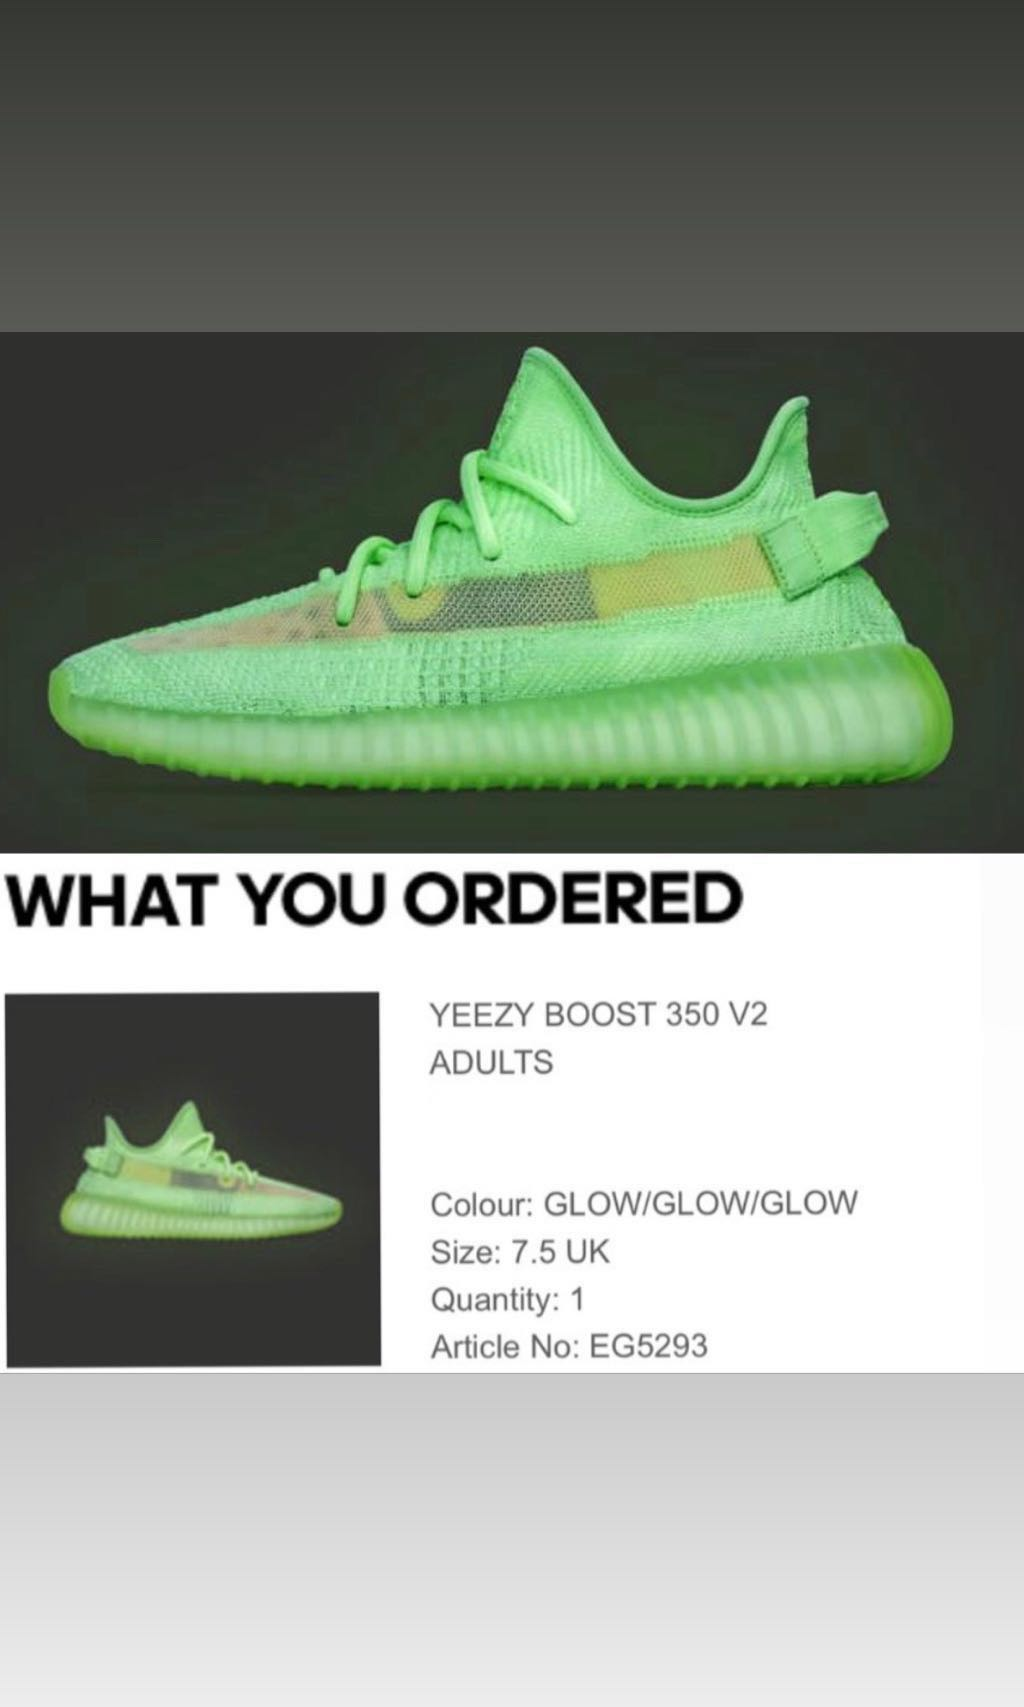 1f26186c adidas Yeezy Boost 350 V2 GID US 8, Men's Fashion, Footwear, Sneakers on  Carousell